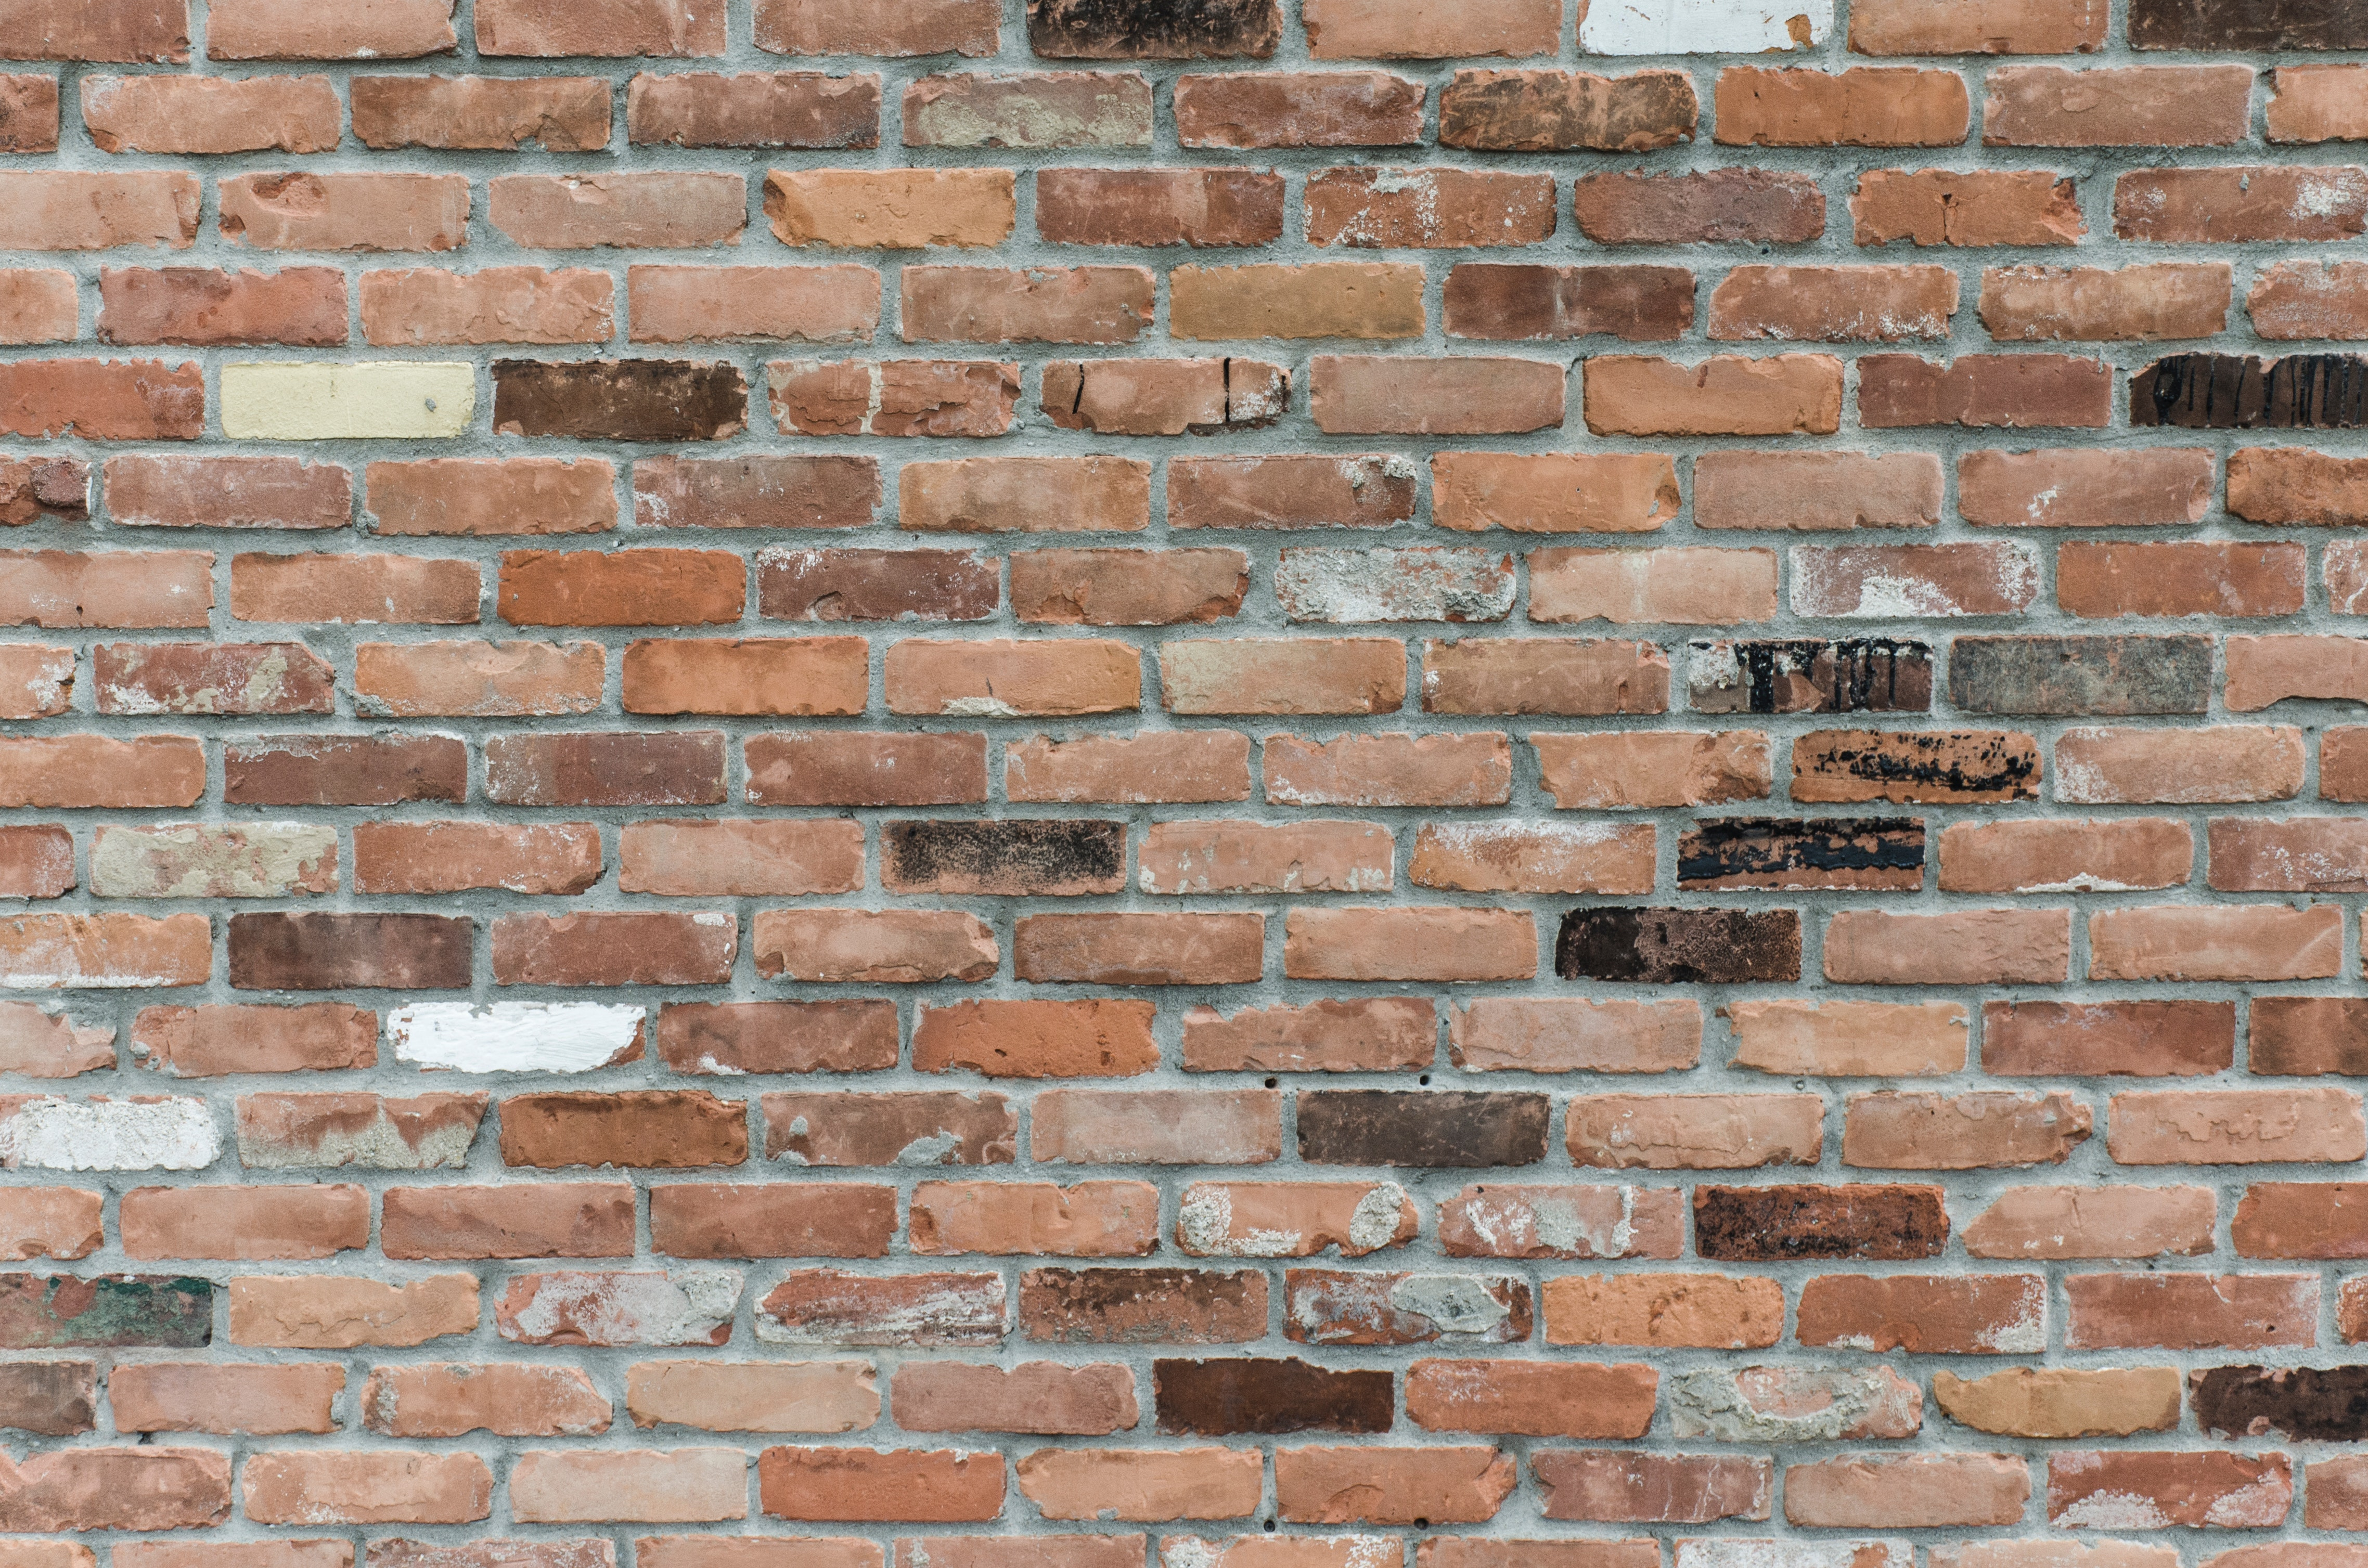 Free stock photos of brick wall · Pexels